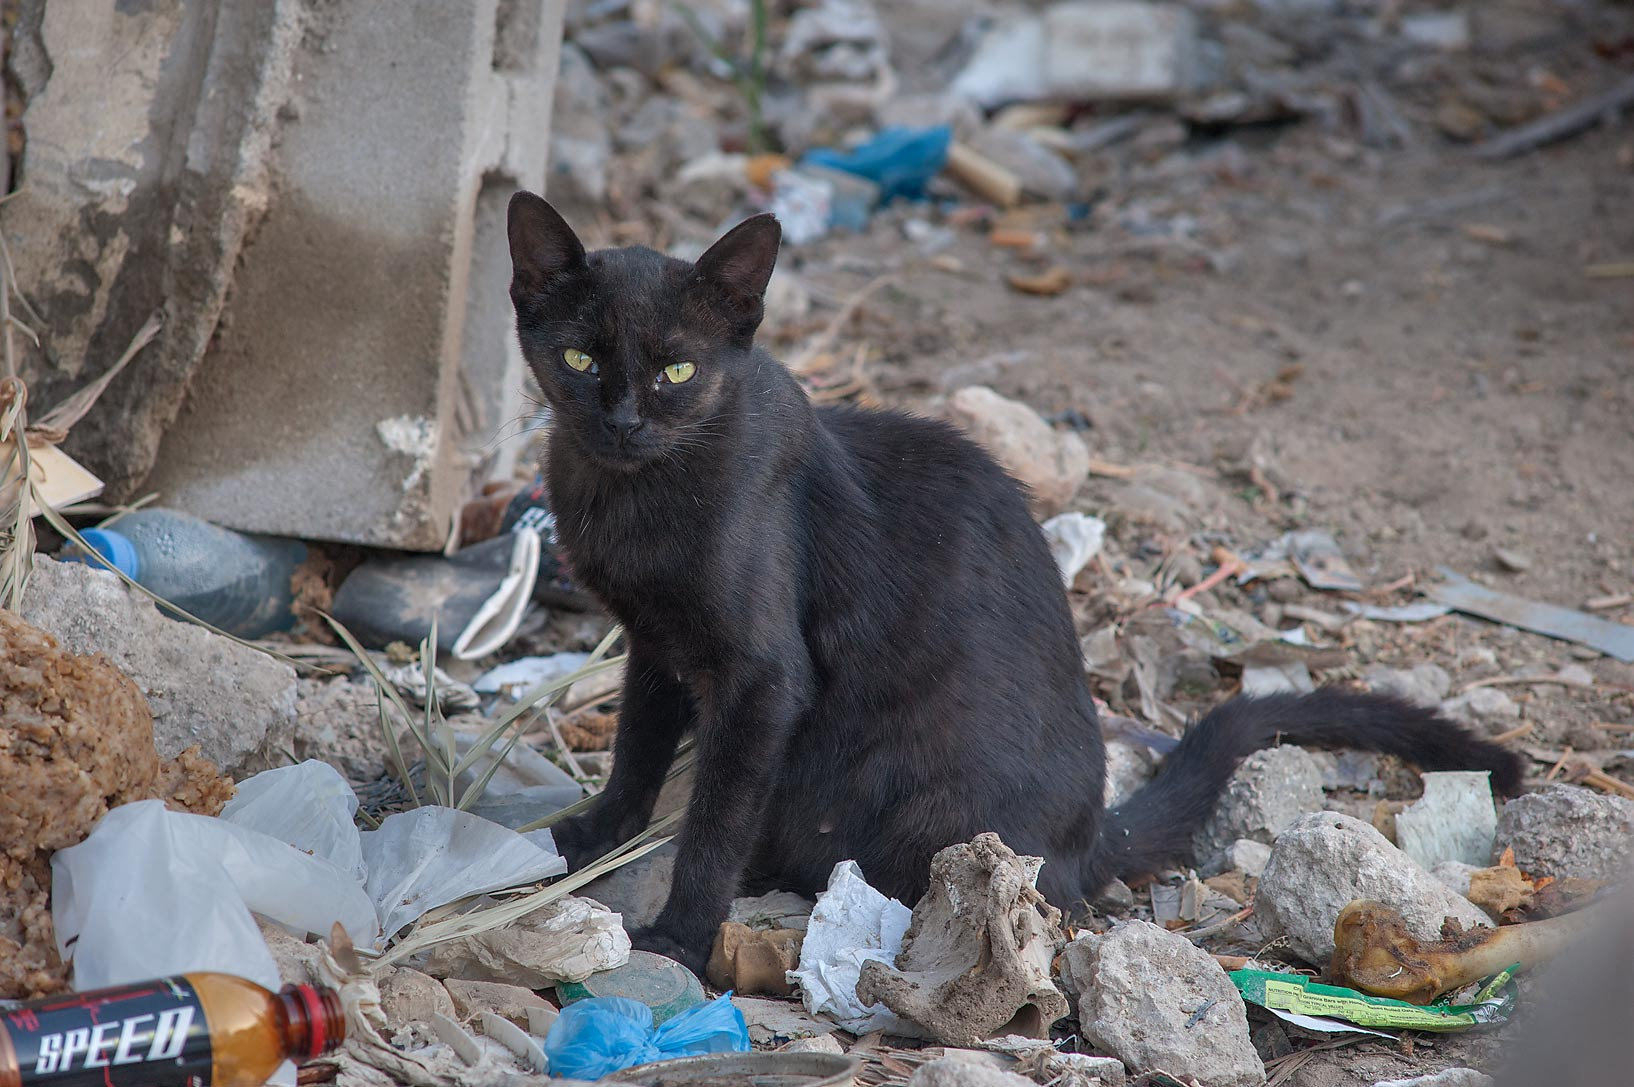 Black cat on Umm Wishad St. in Musheirib area. Doha, Qatar